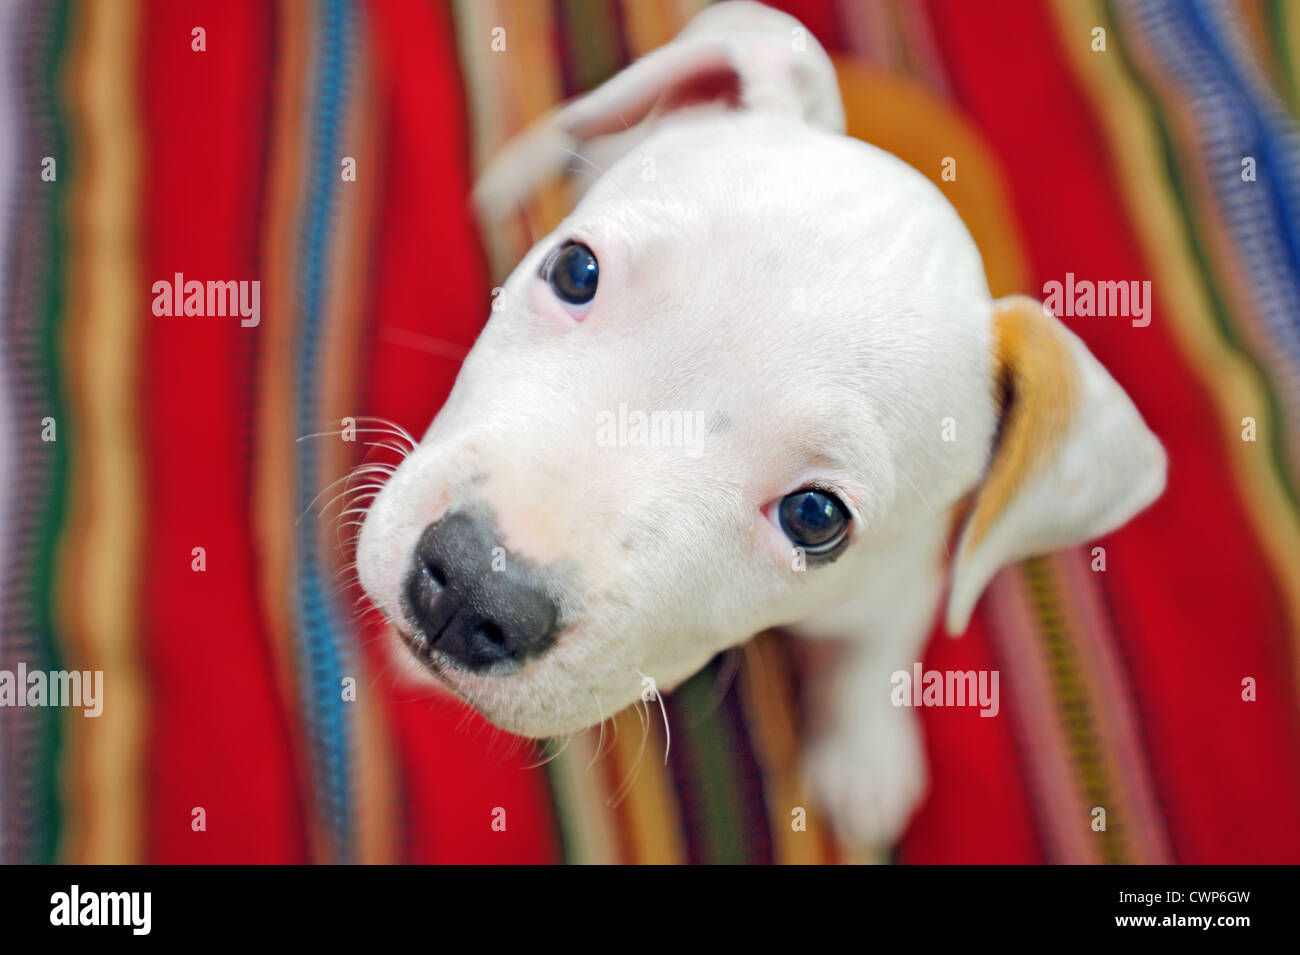 American Staffordshire Terrier dog - Stock Image